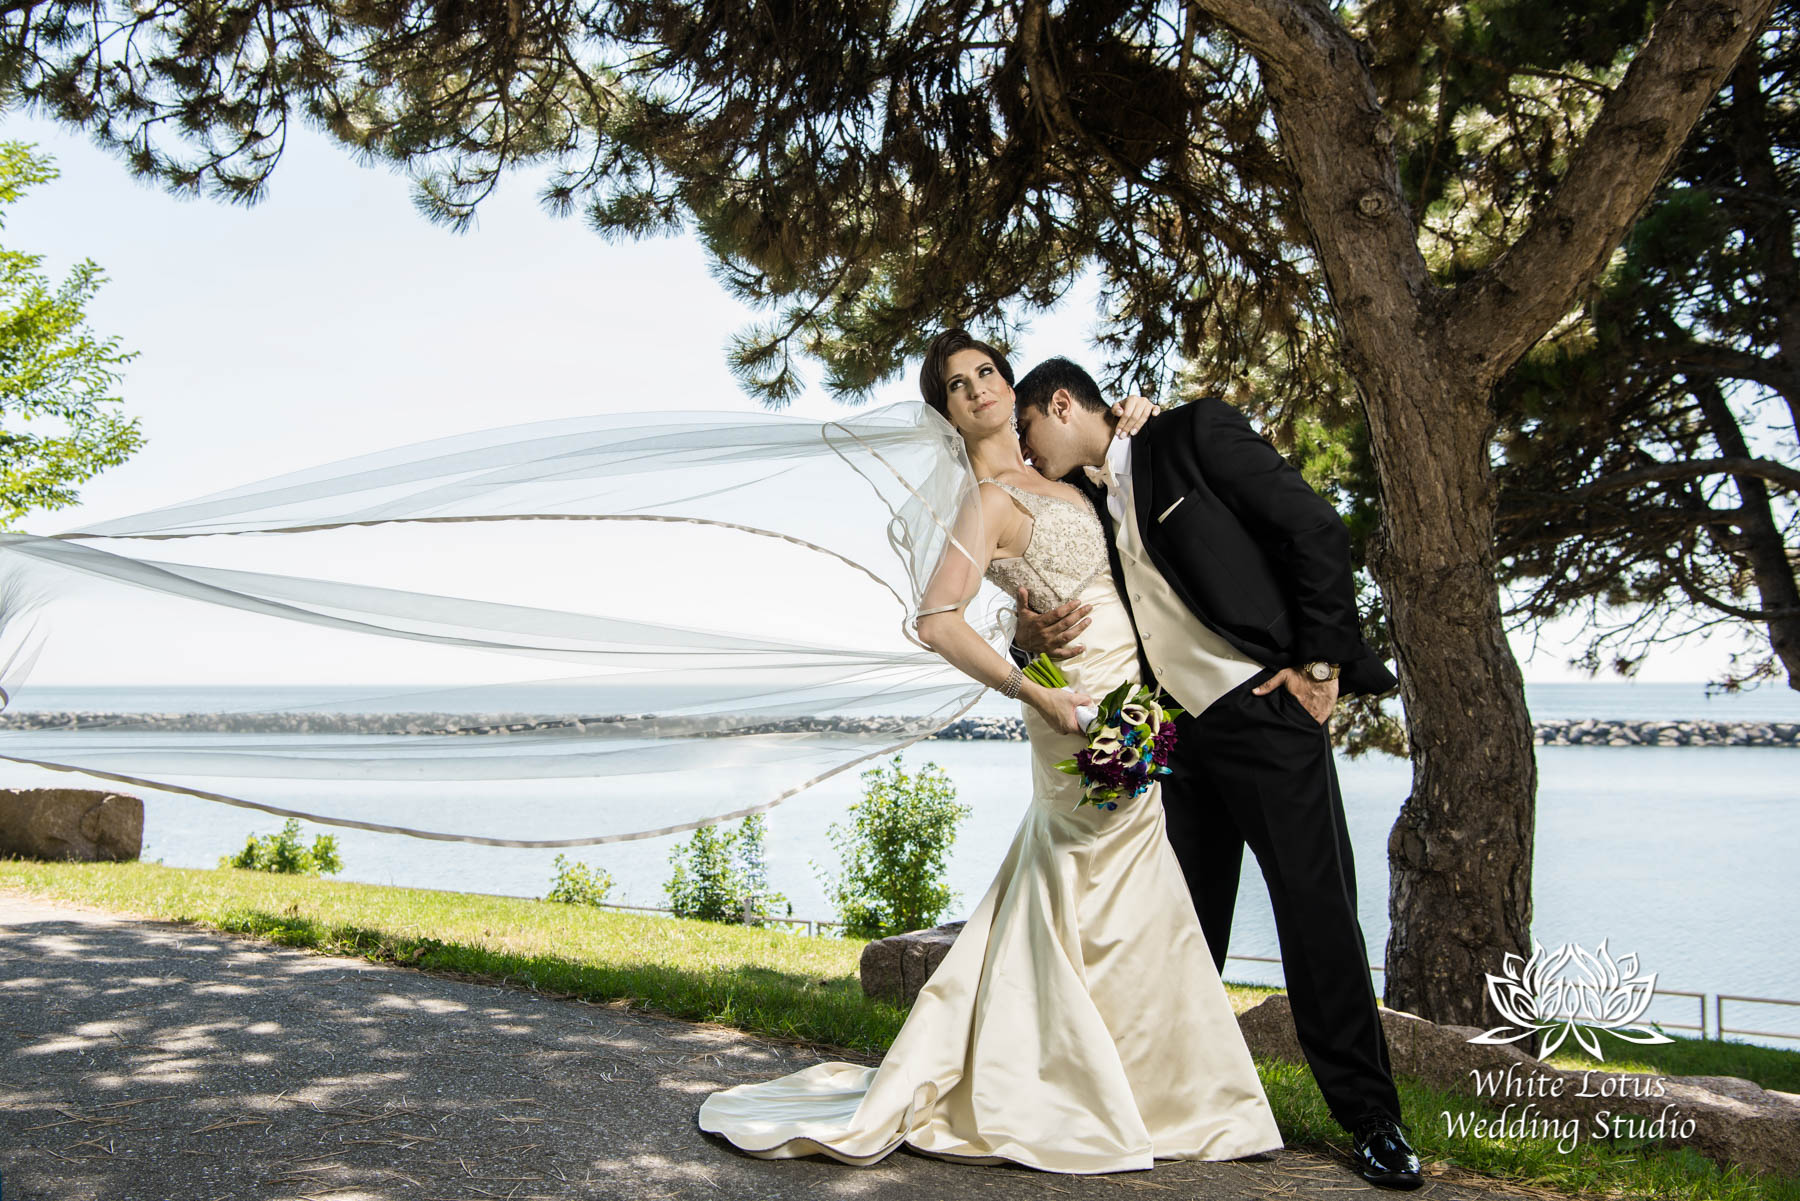 099 - Wedding - Toronto - Lakeshore wedding - PW